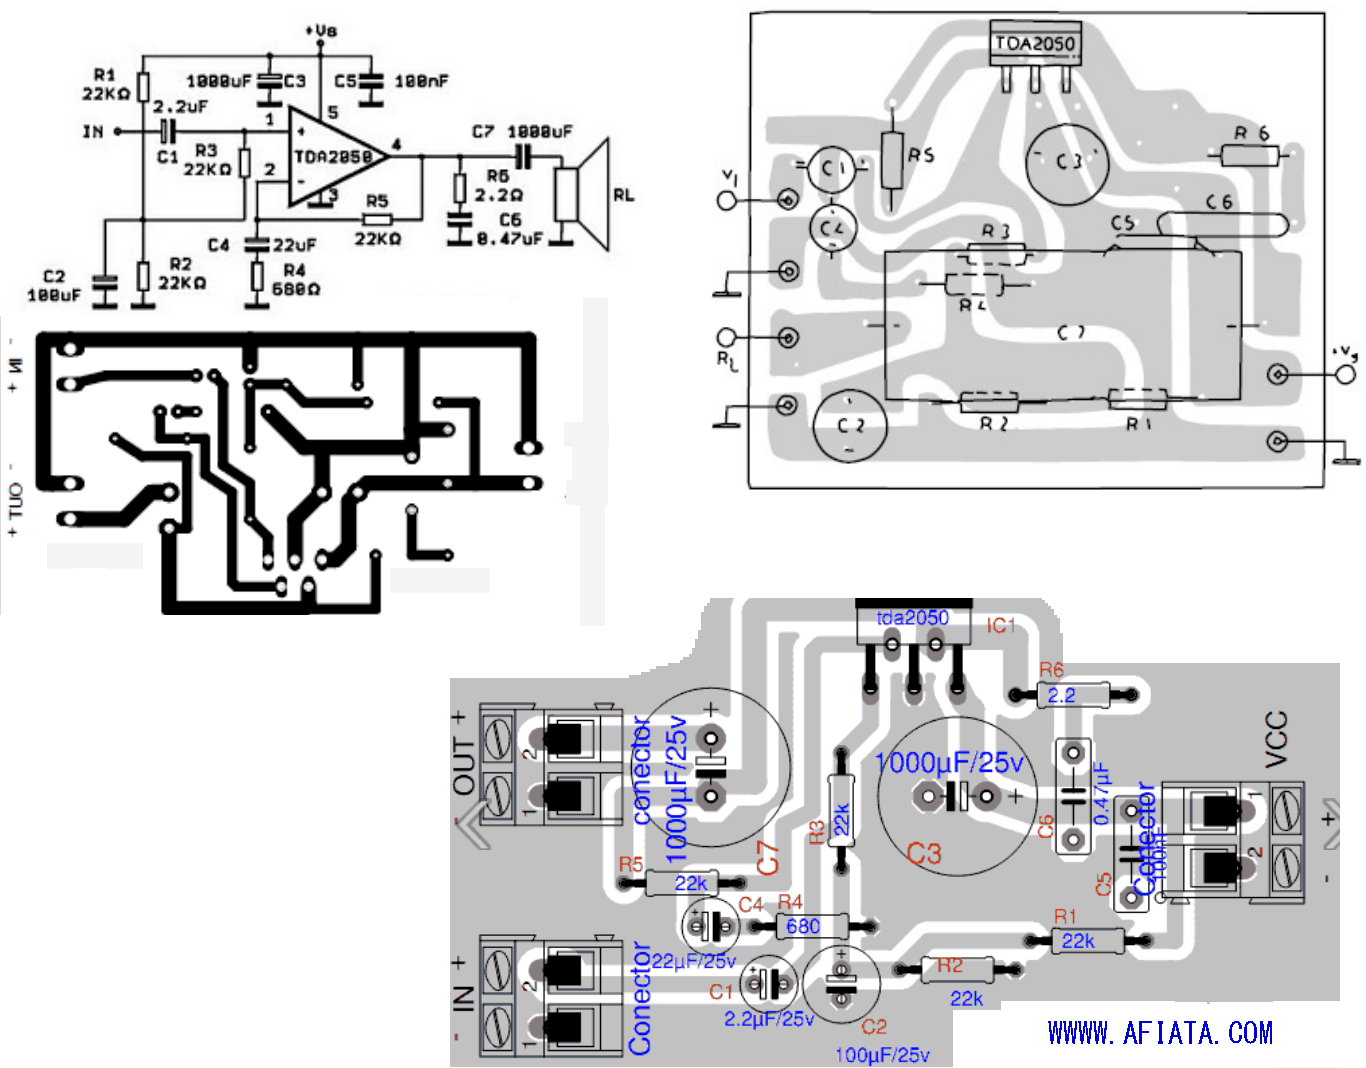 audio amplifier circuit diagram with layout honda 250 atv wiring tda2050 and electronic